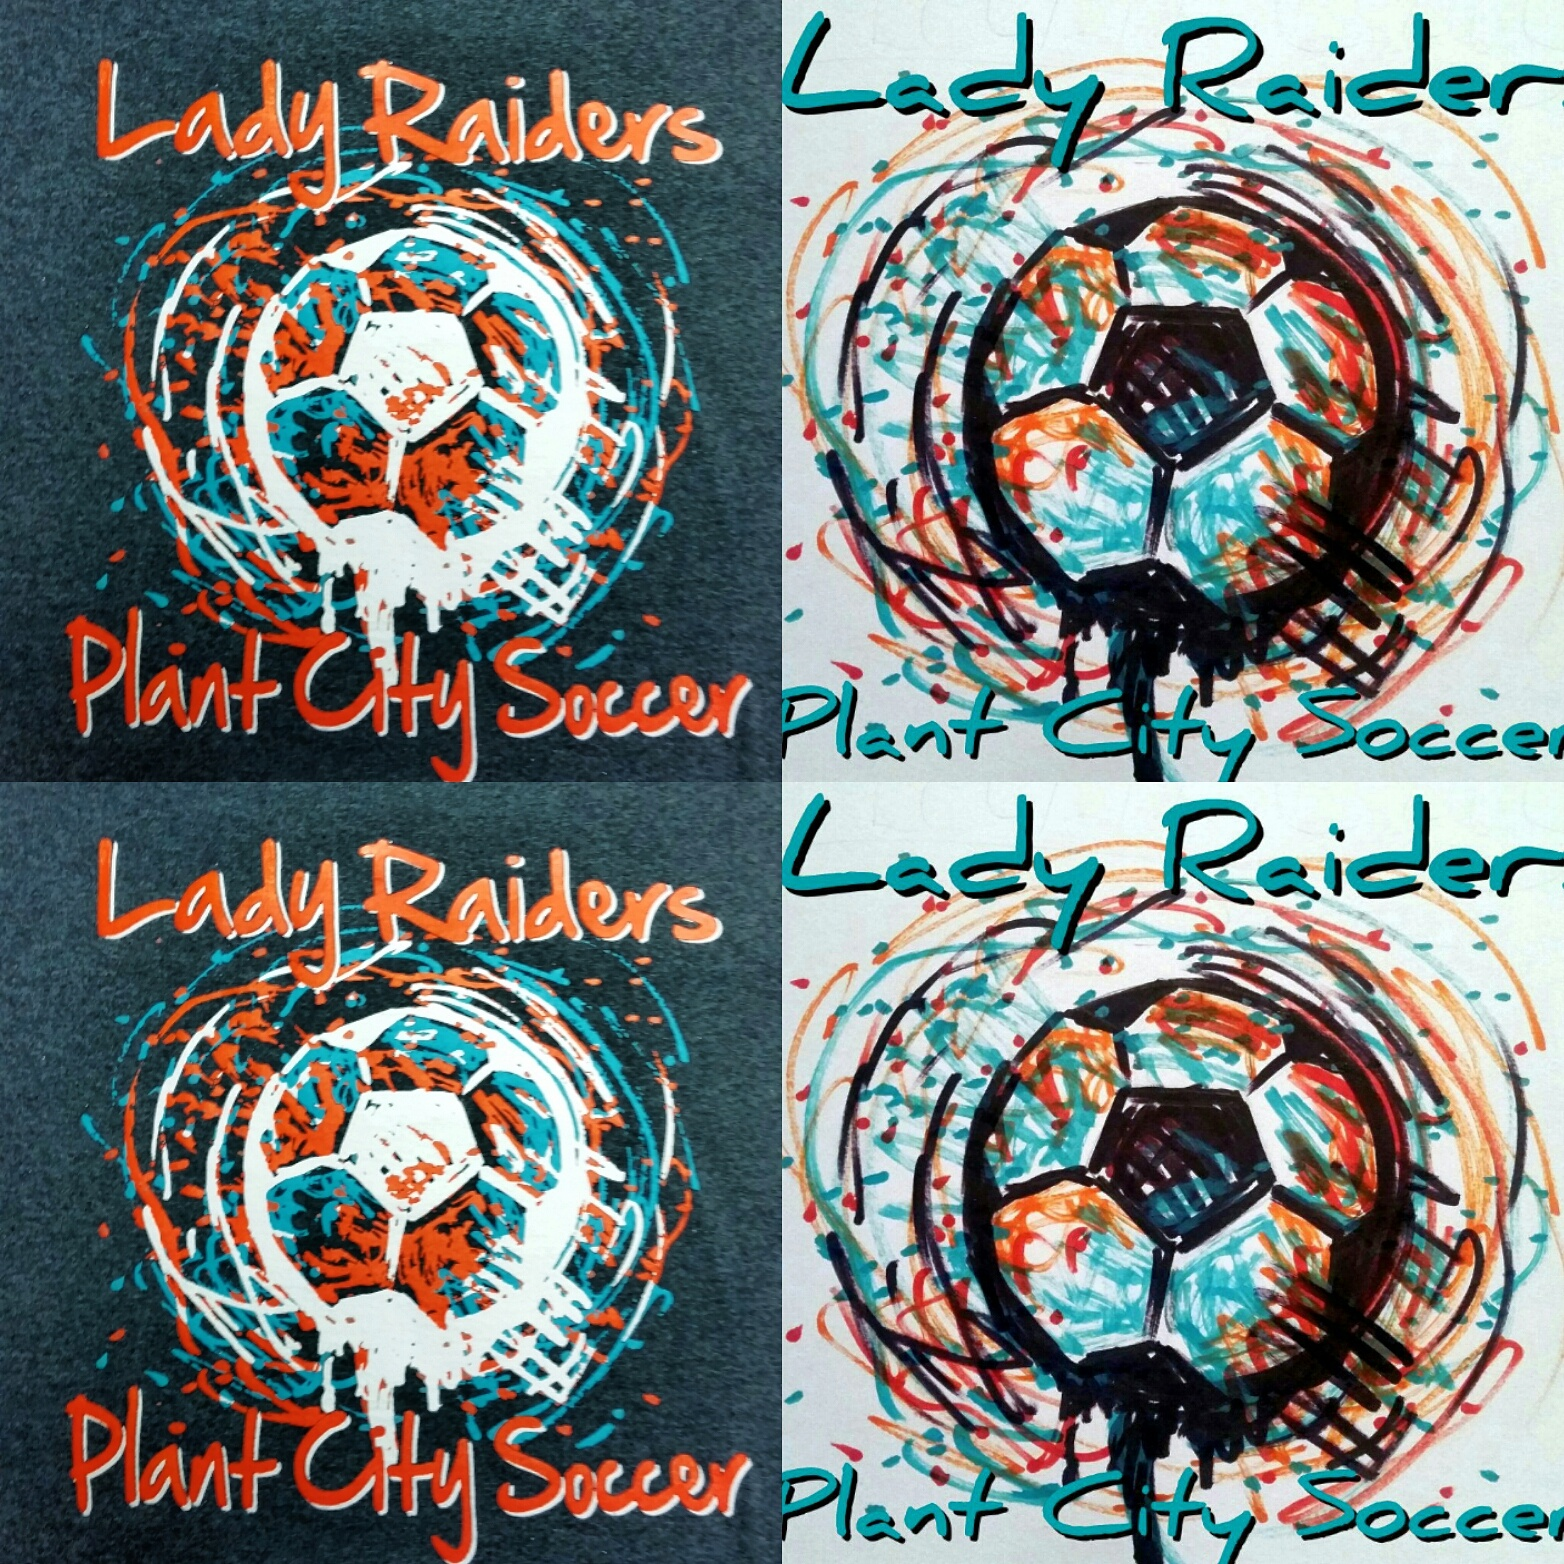 Plant City Lady Raiders T-shirt